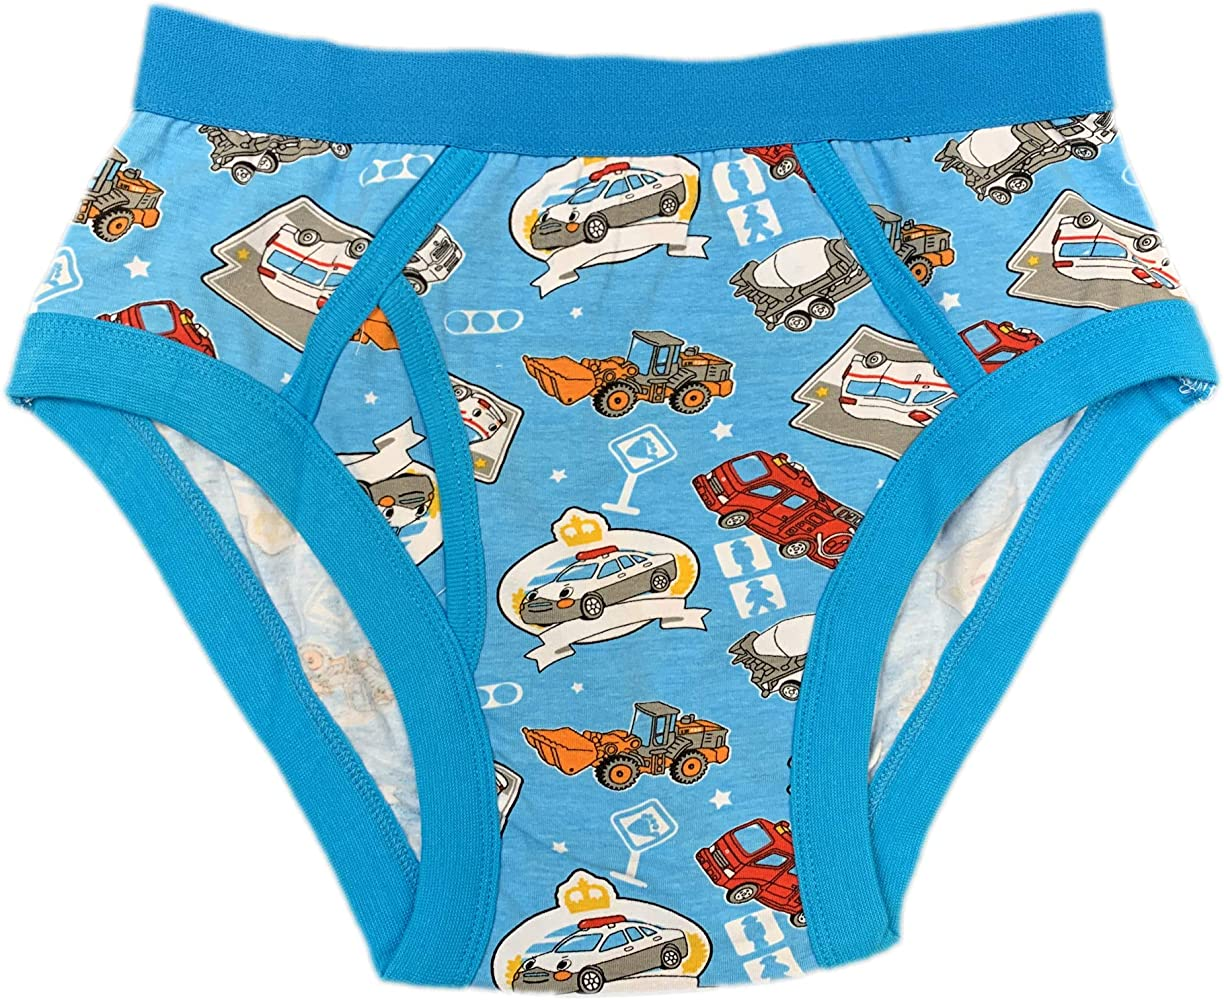 CUDDLZ Mens Adult Sized Red Colourful Frog and Animal Pattern Cartoon Underpants Briefs Y-Fronts YFronts